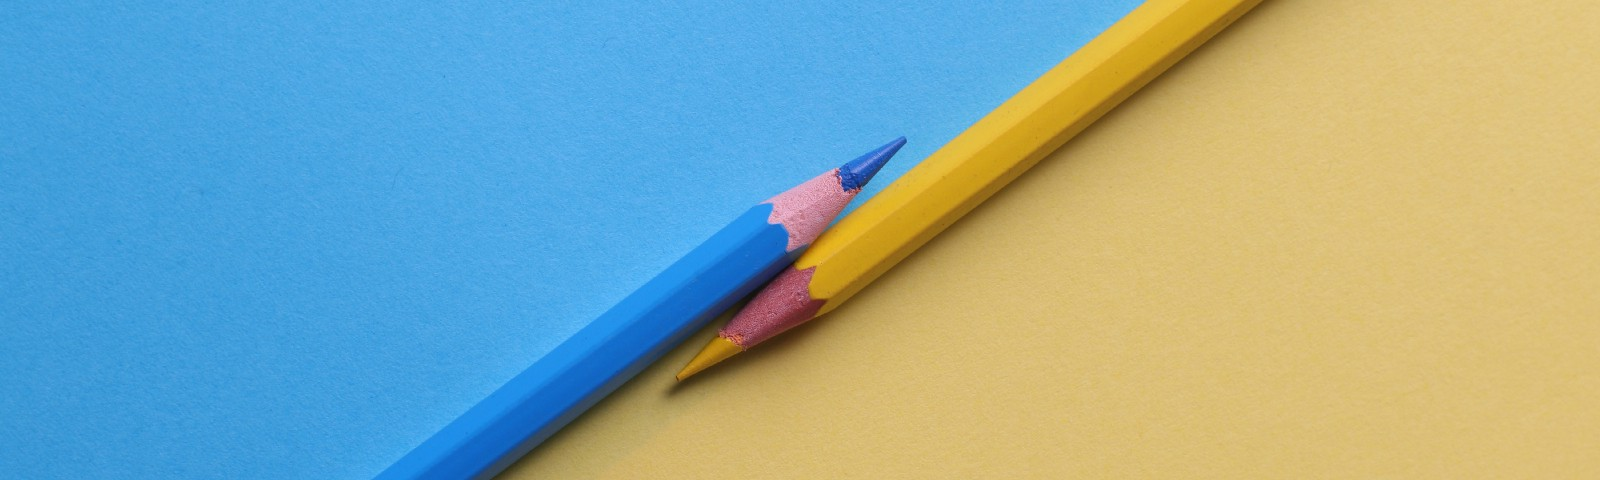 Blue and yellow pencils showing contrast and the differences in the most popular medium.com stories